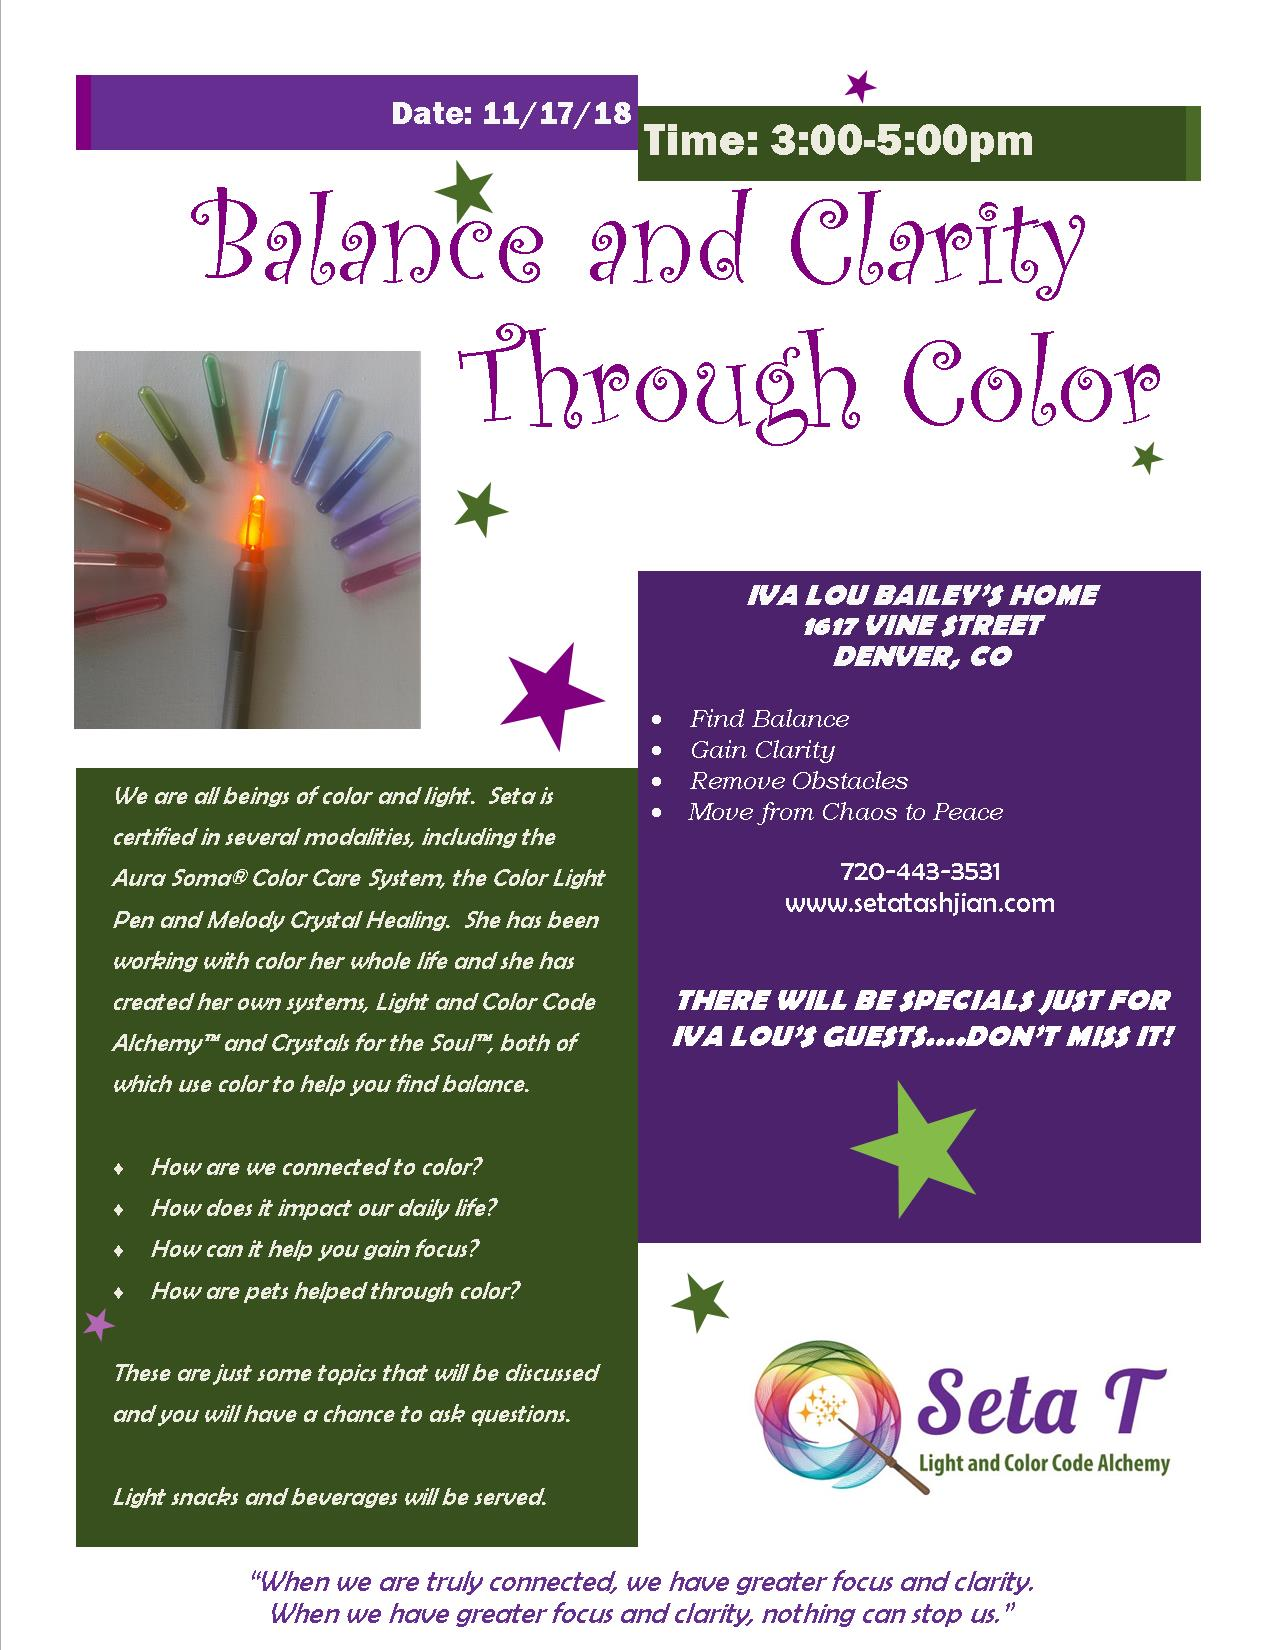 Seta Tashjian - Balance and Clarity Through Color Nov 17, 2018